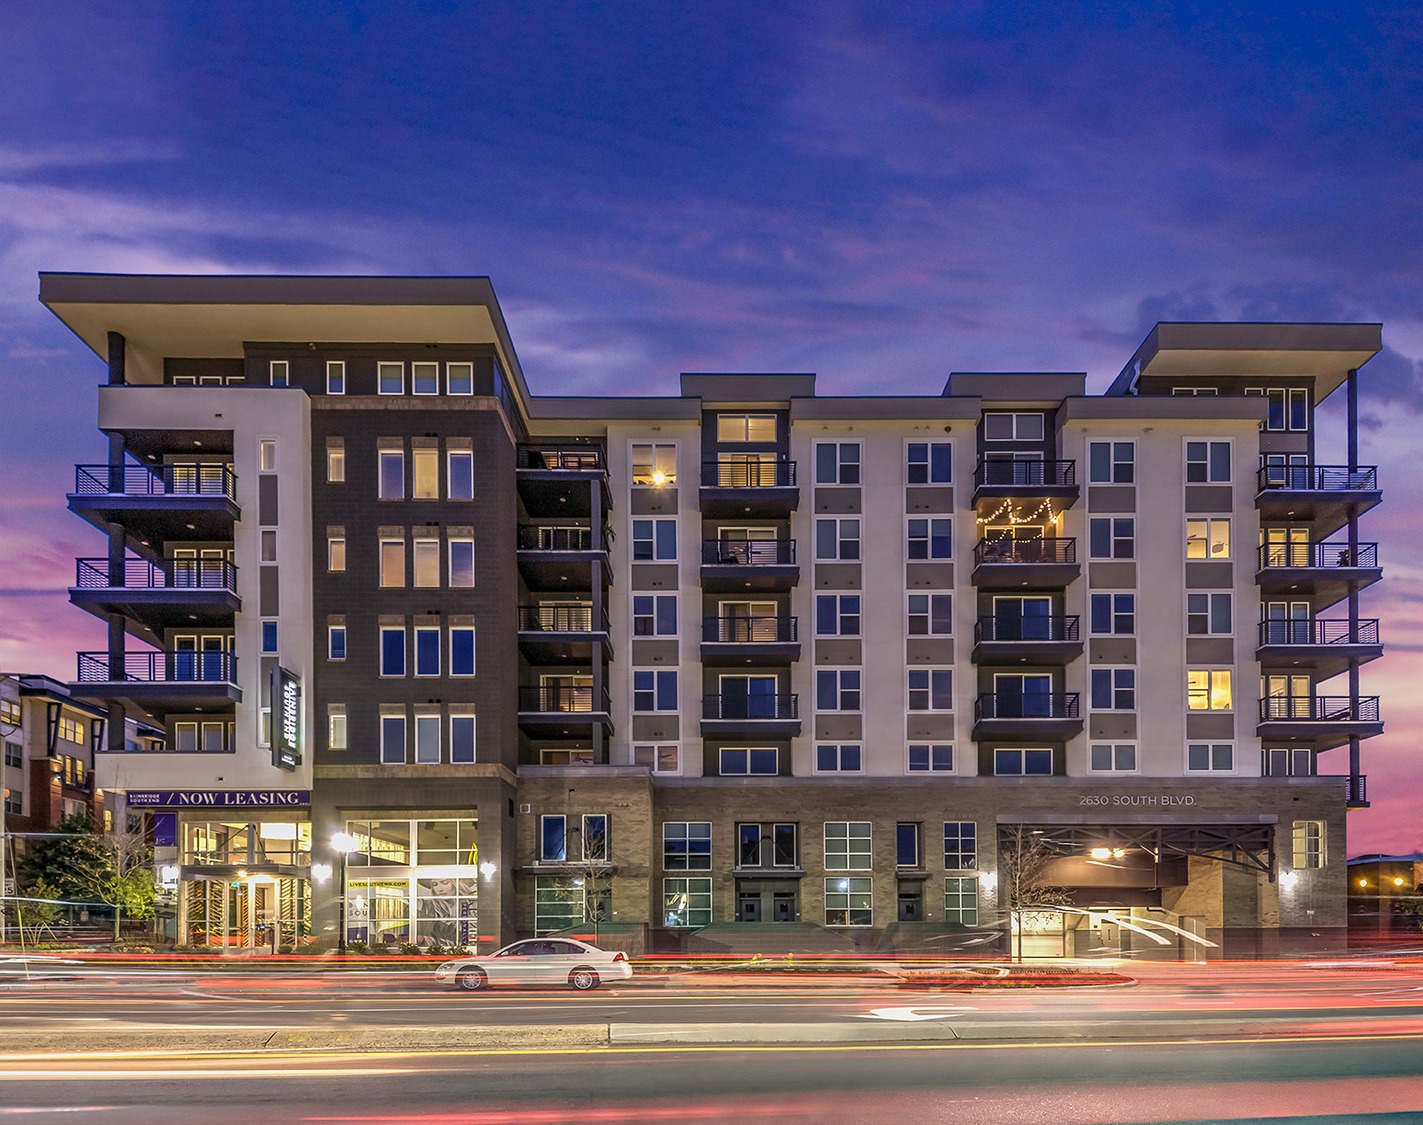 CBG builds Bainbridge South End, a 200-Unit Apartment Community with Amenities and Underground Parking in Charlotte, NC